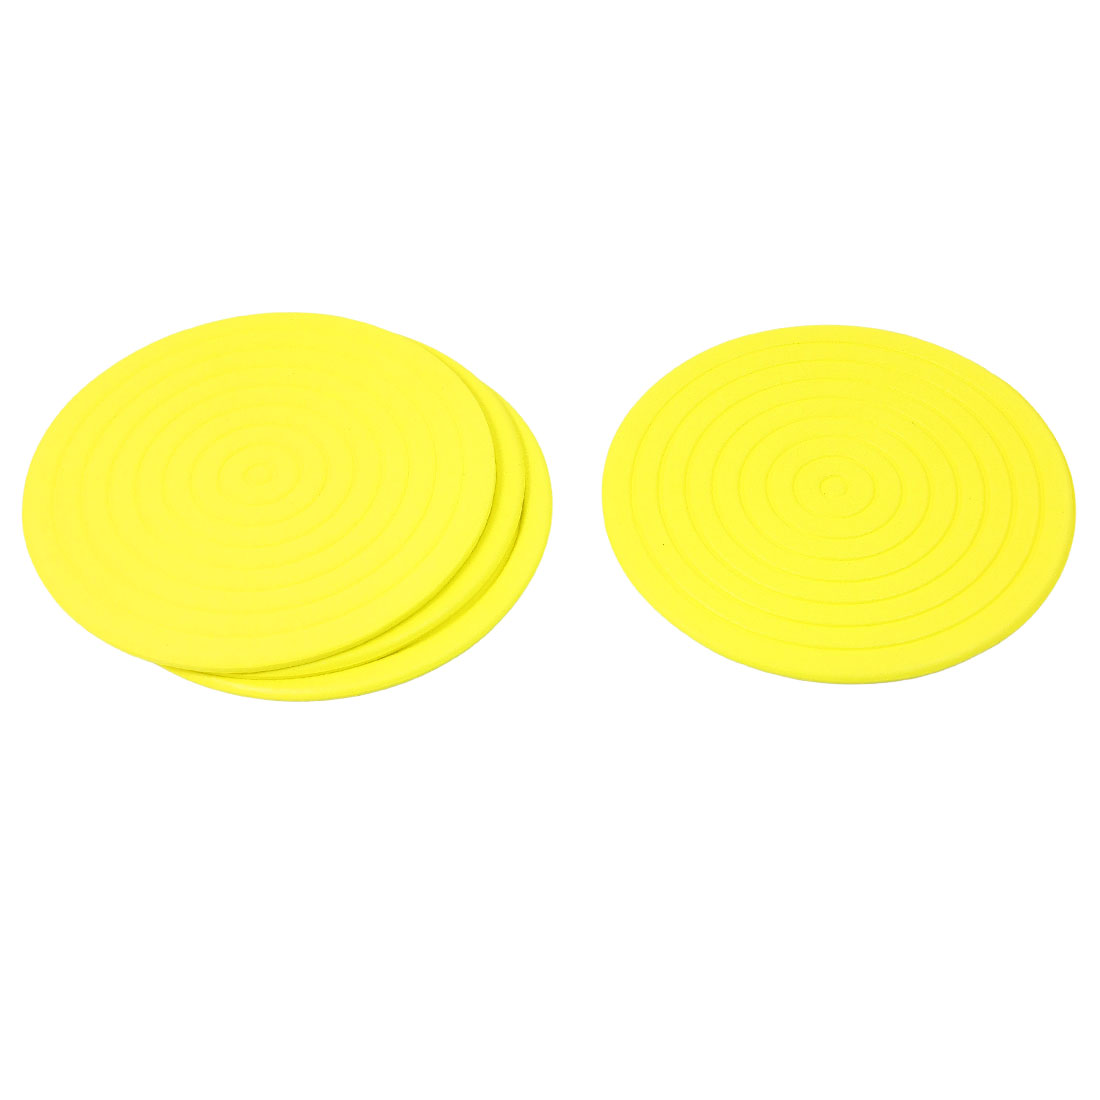 4 Pcs Coil Shaped Foam Antislip Heat Resistant Cup Mats Pads Yellow